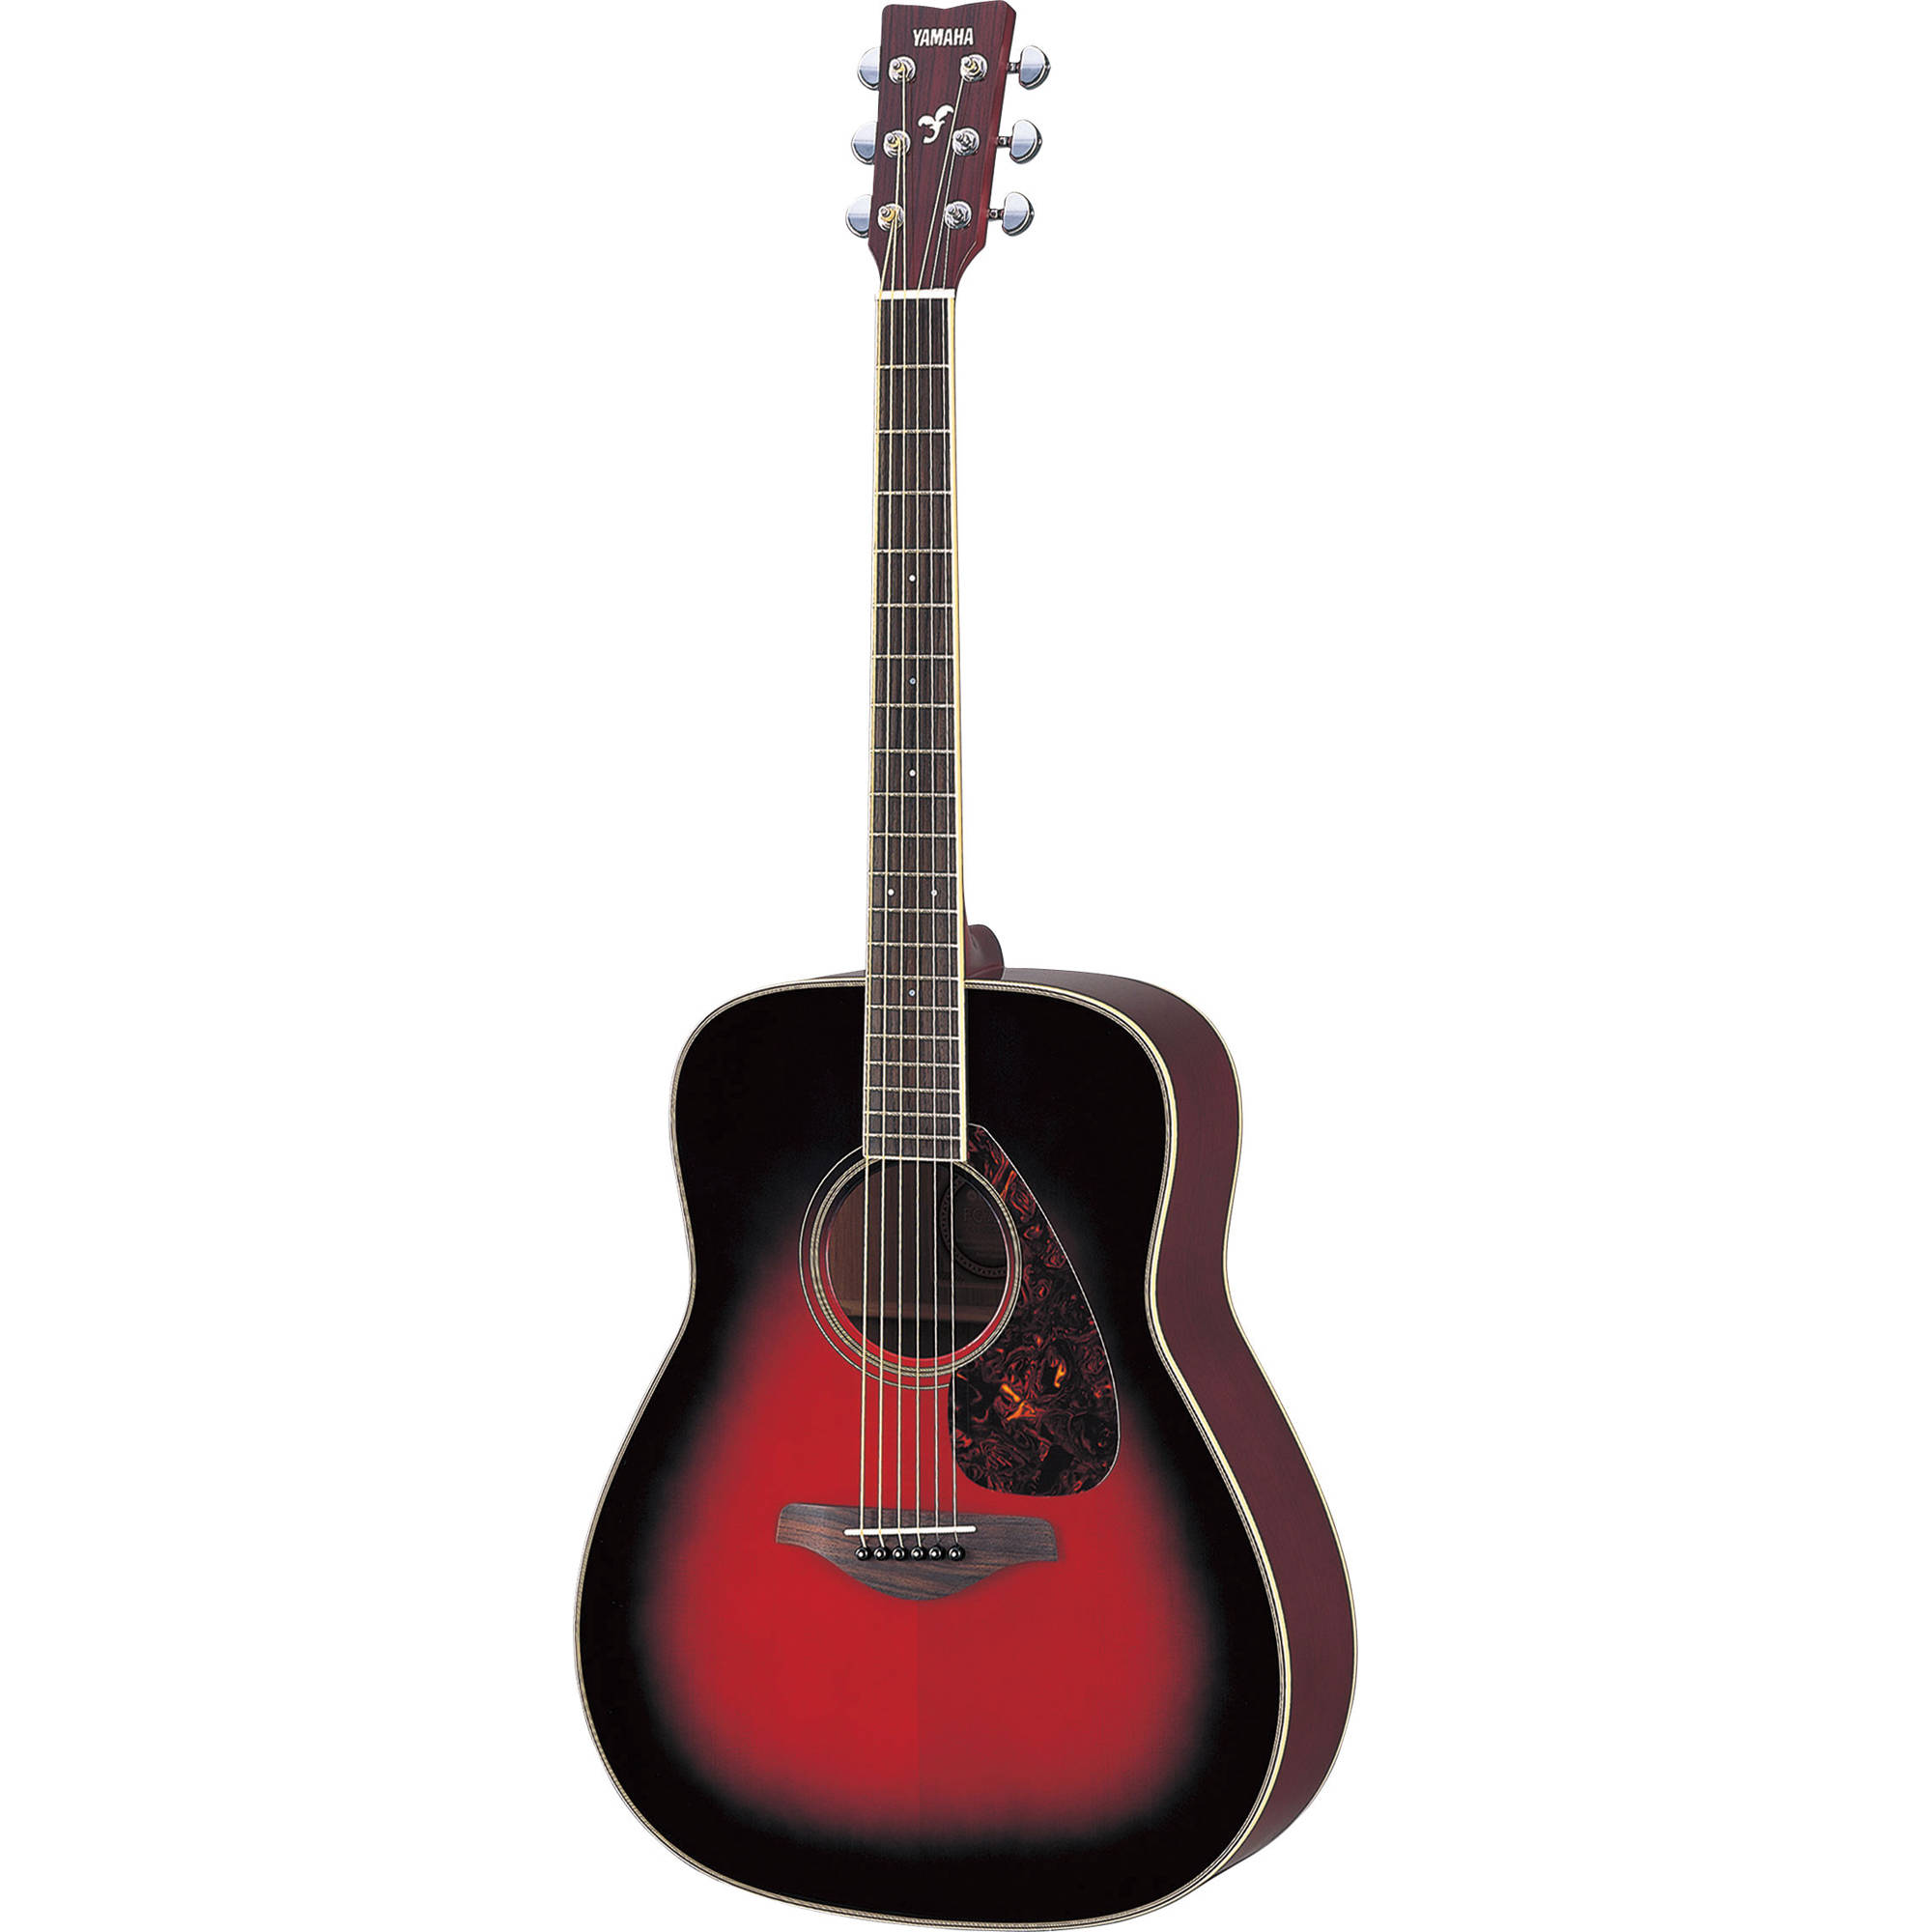 Yamaha Fg S Dsr Review